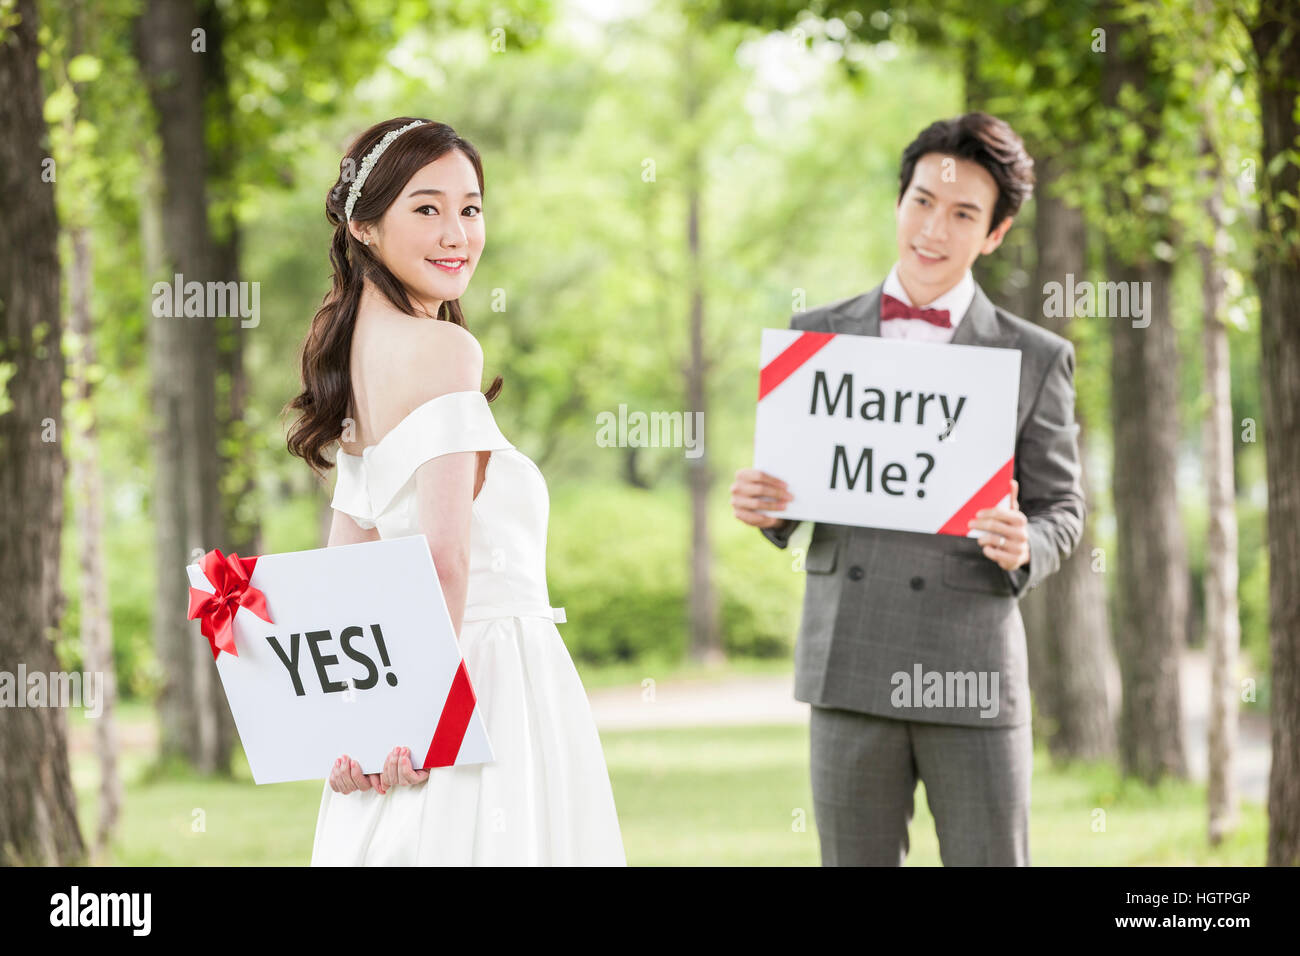 Young Romantic Wedding Couple Posing With English Messages Outdoors Stock Photo Alamy